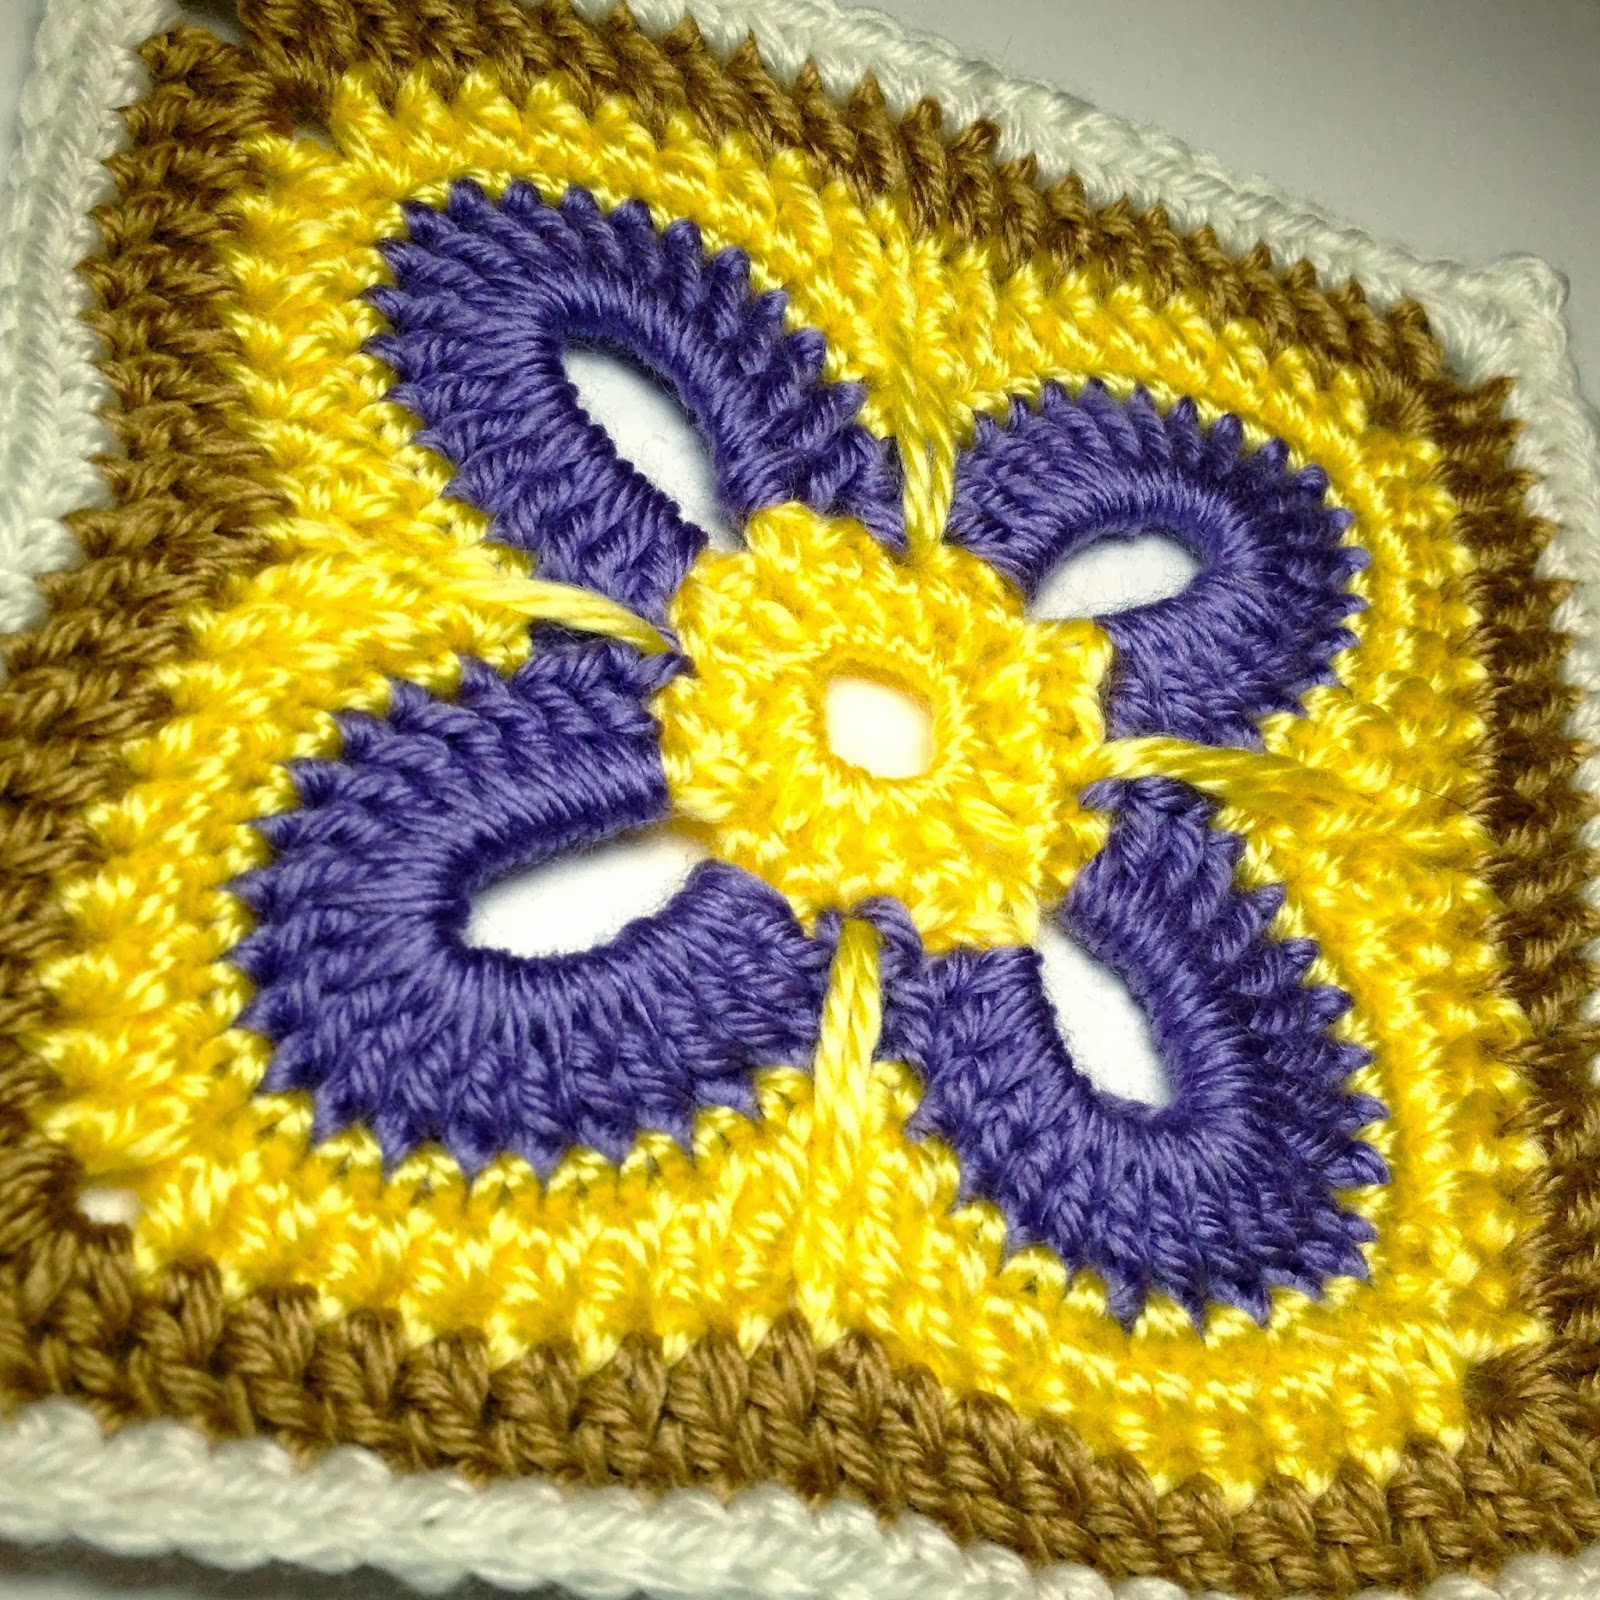 Free Crochet Patterns: Free Crochet Granny Square Motif ...